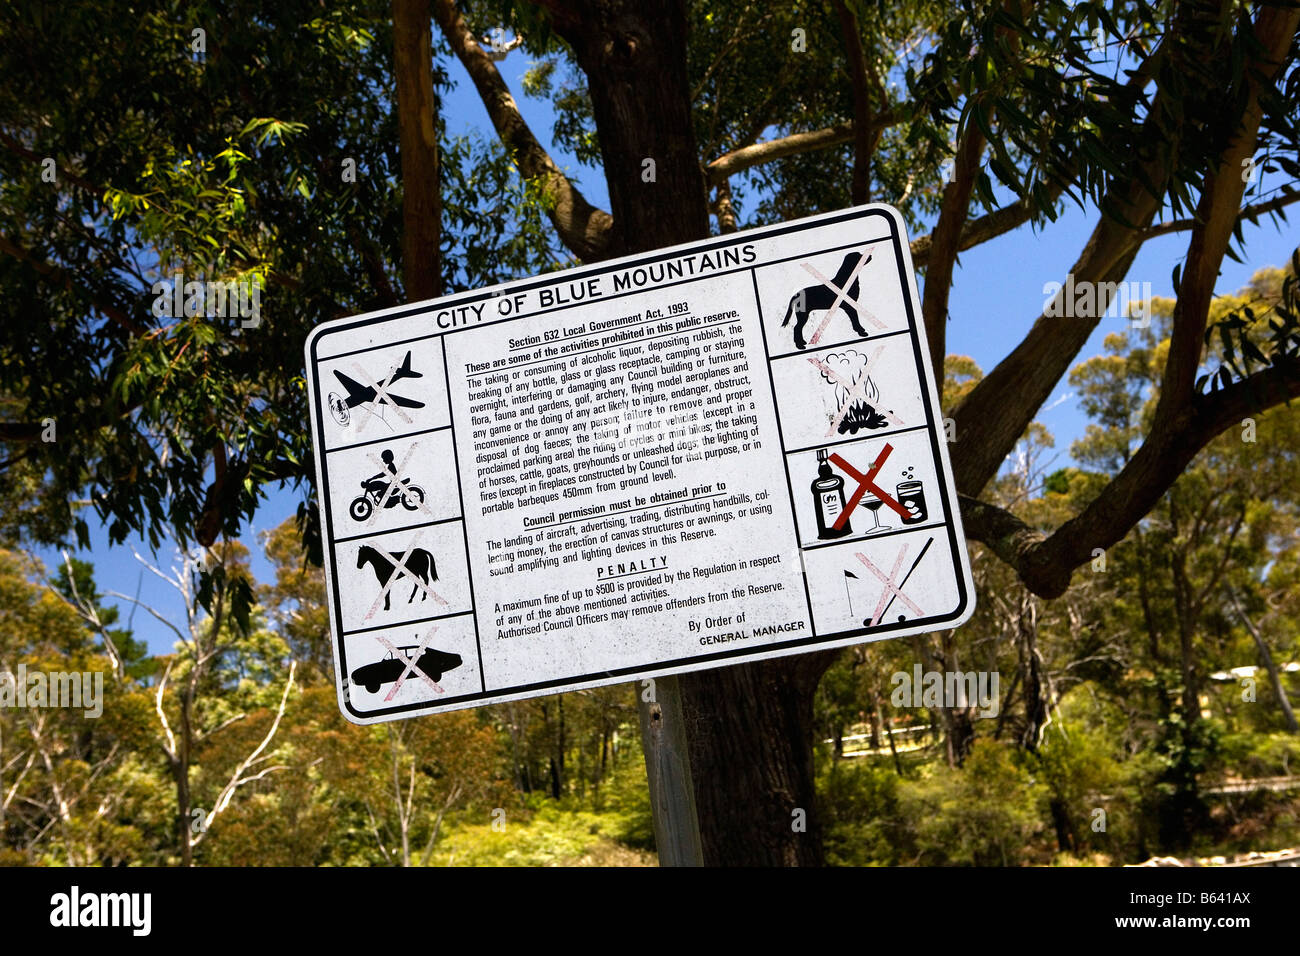 Australia. New South Wales, Katoomba, Blue Mountains National Park. Sign: What's not allowed. - Stock Image